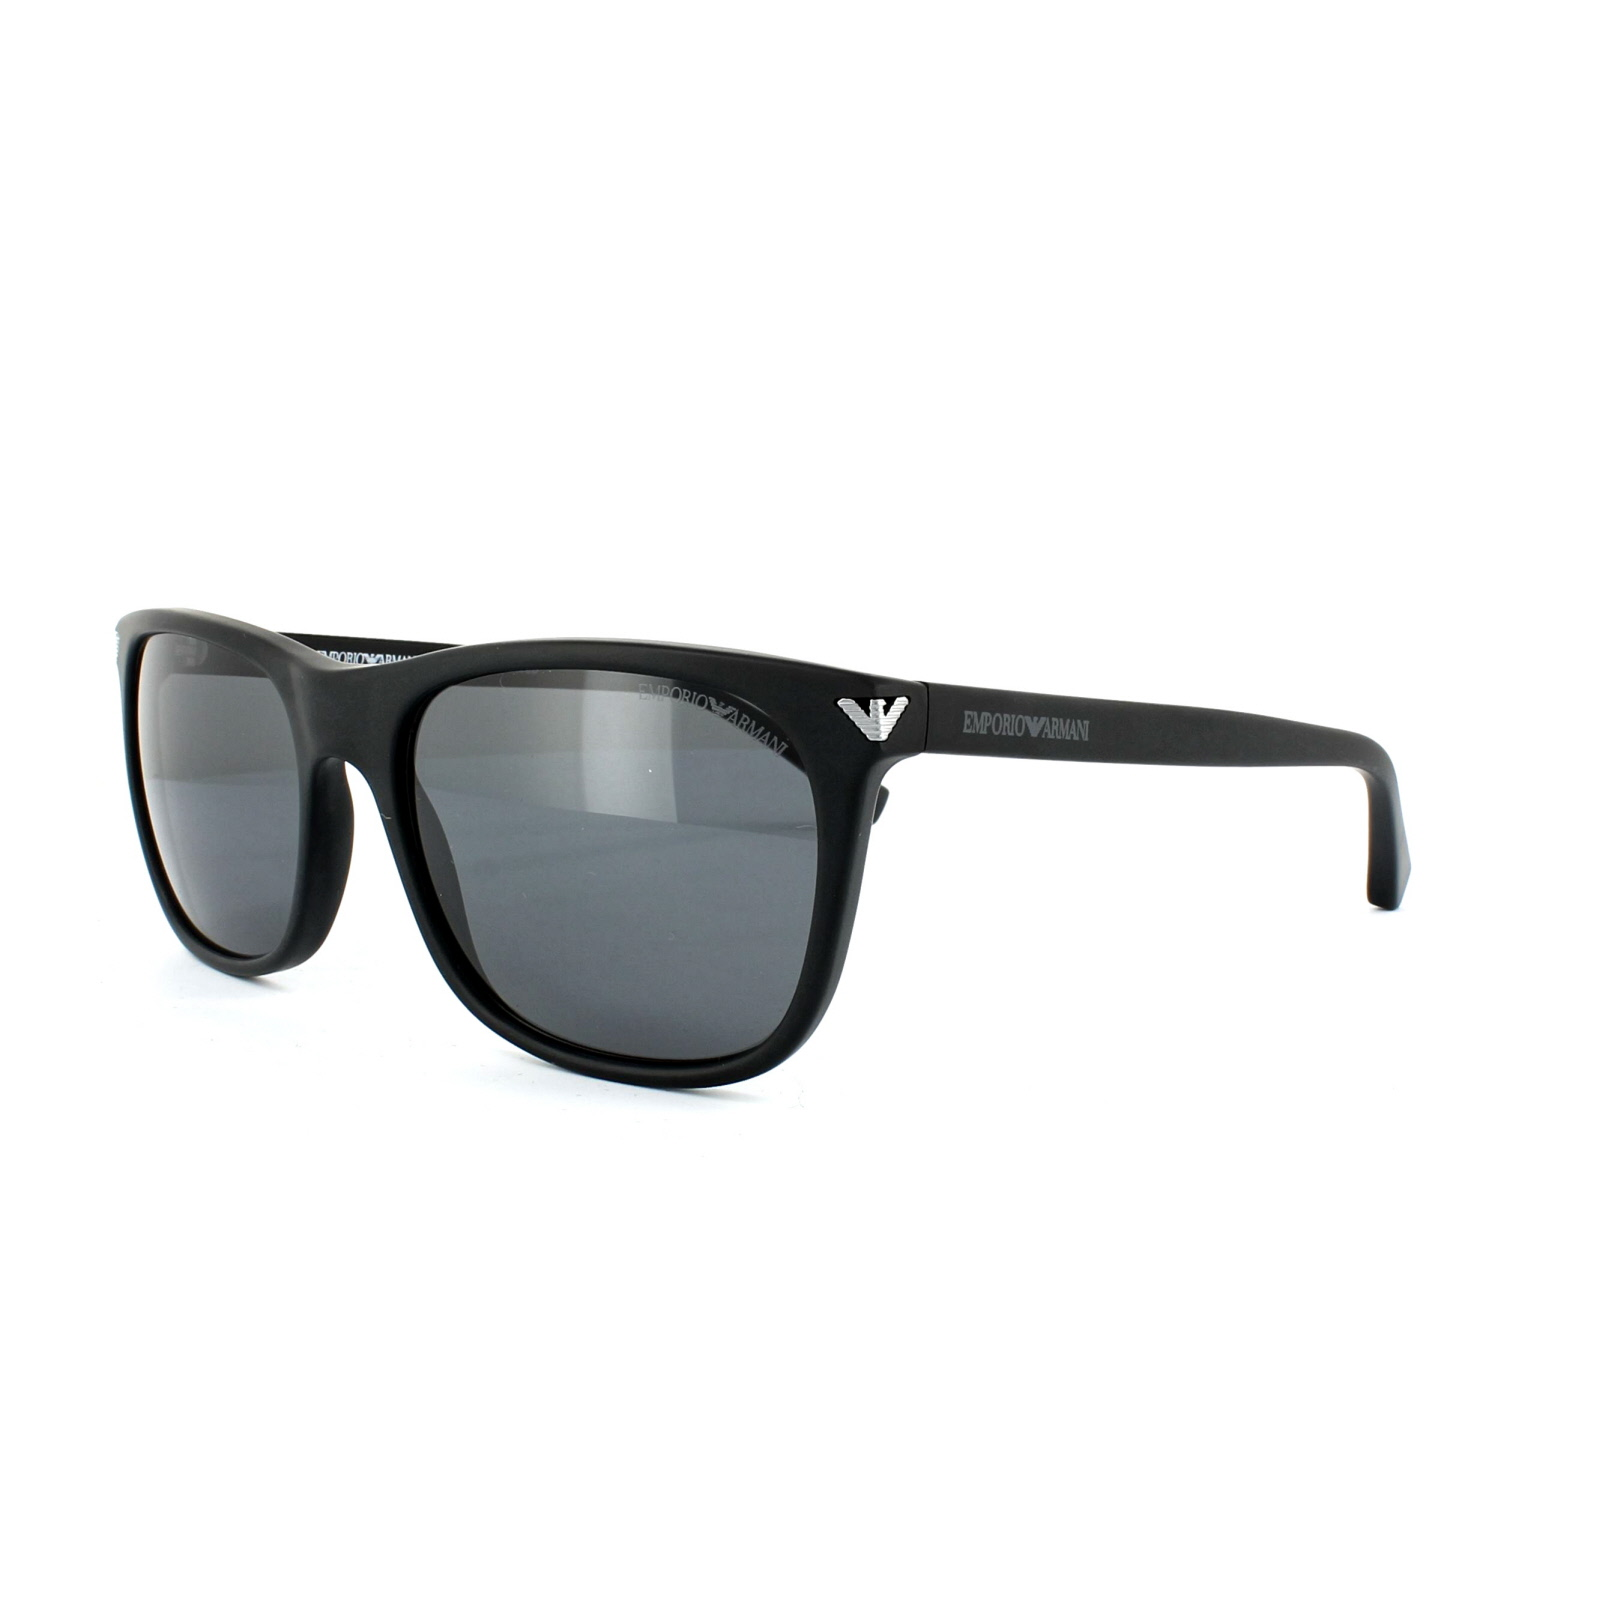 fc71f518035f Sentinel Emporio Armani Sunglasses 4056 5042 81 Matt Black Grey Polarized